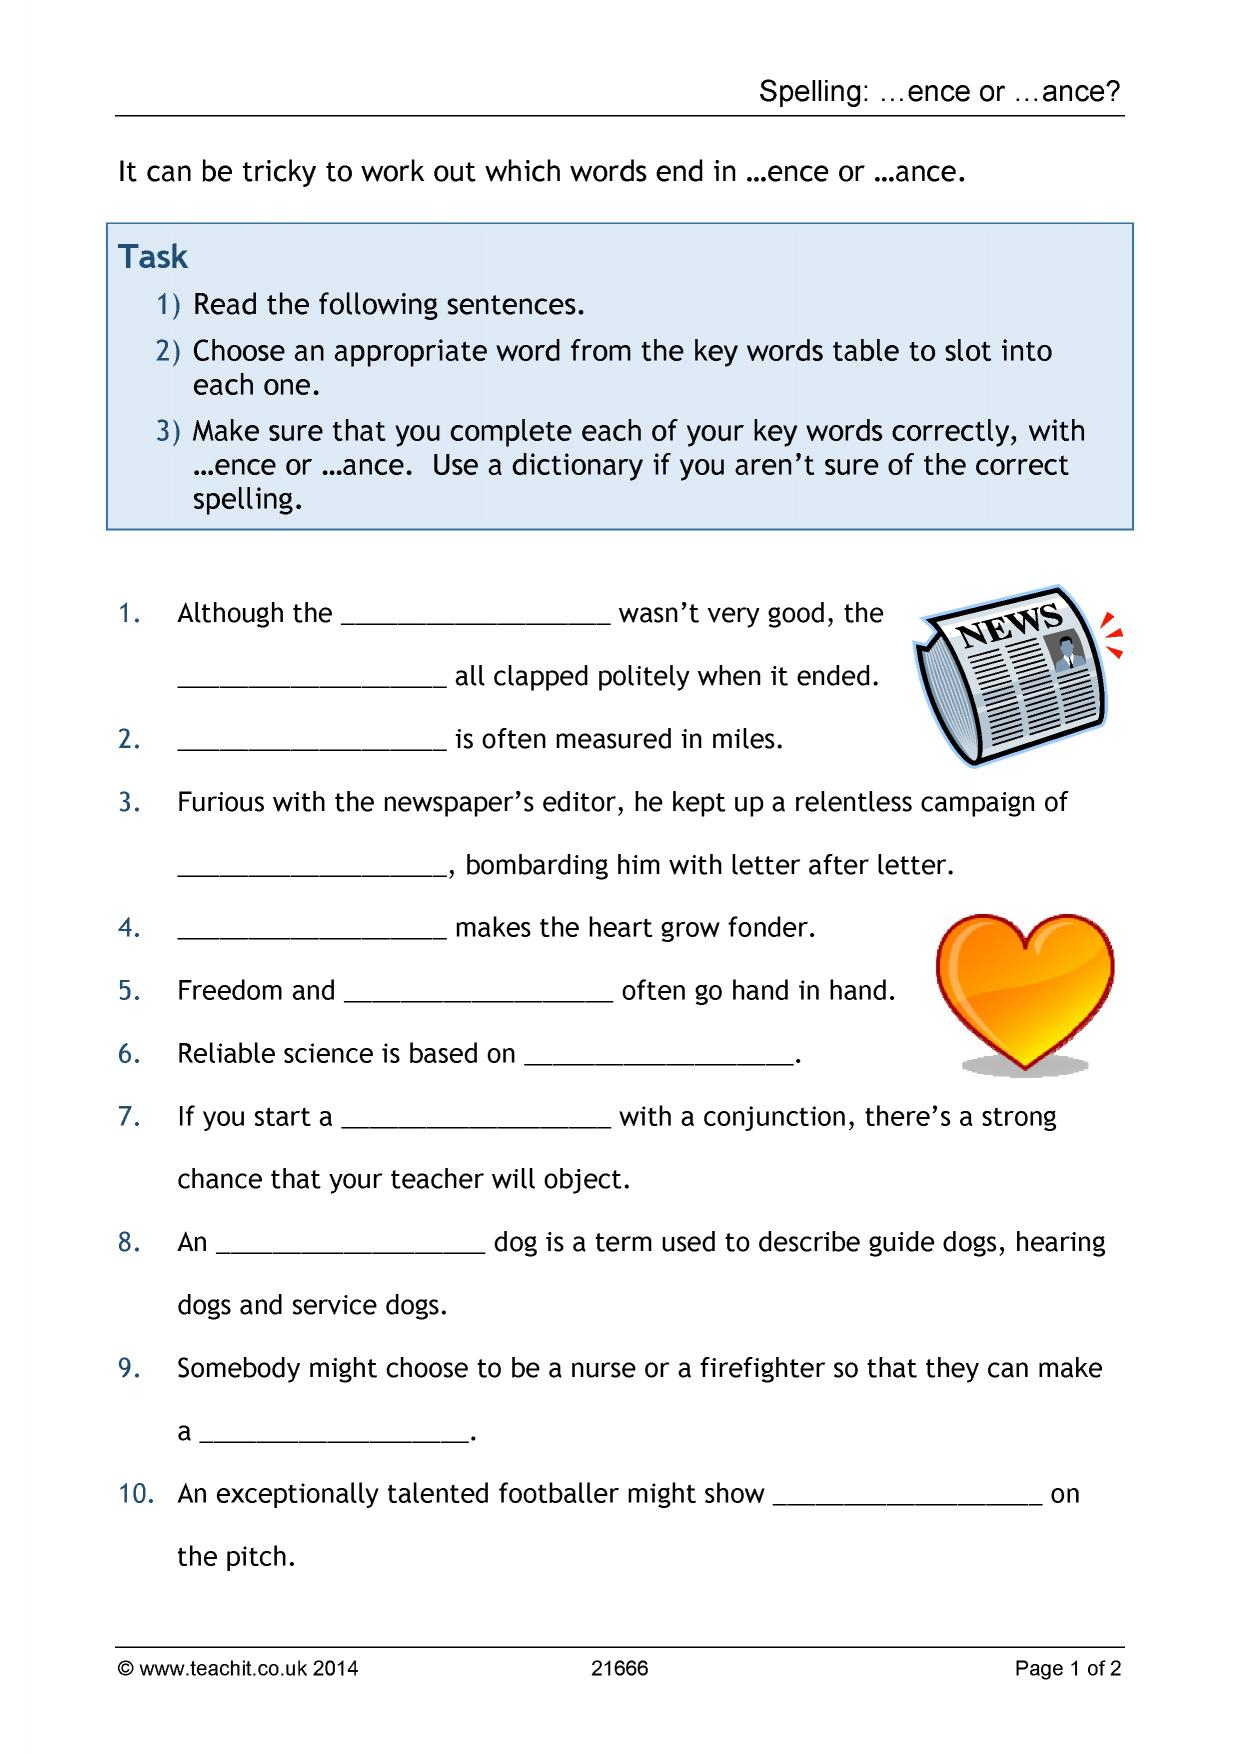 Spelling Ence Or Ance Stage English Worksheets X46260 Peed with Key Stage 1 Alphabet Worksheets